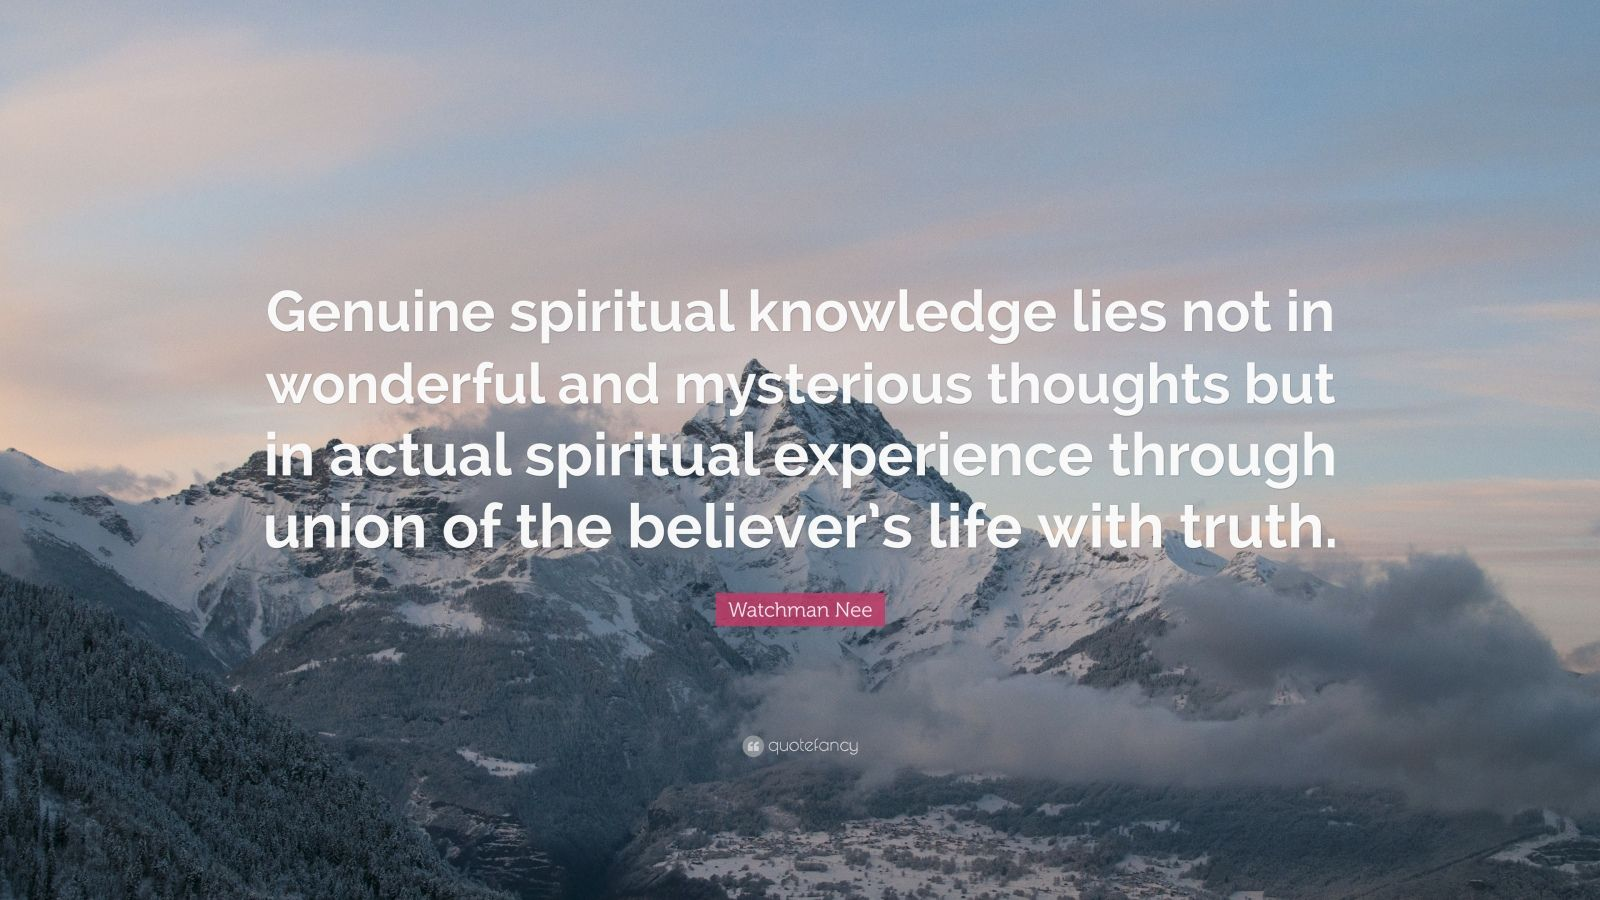 """Watchman Nee Quote: """"Genuine spiritual knowledge lies not in wonderful and mysterious thoughts but in actual spiritual experience through union of the believer's life with truth."""""""